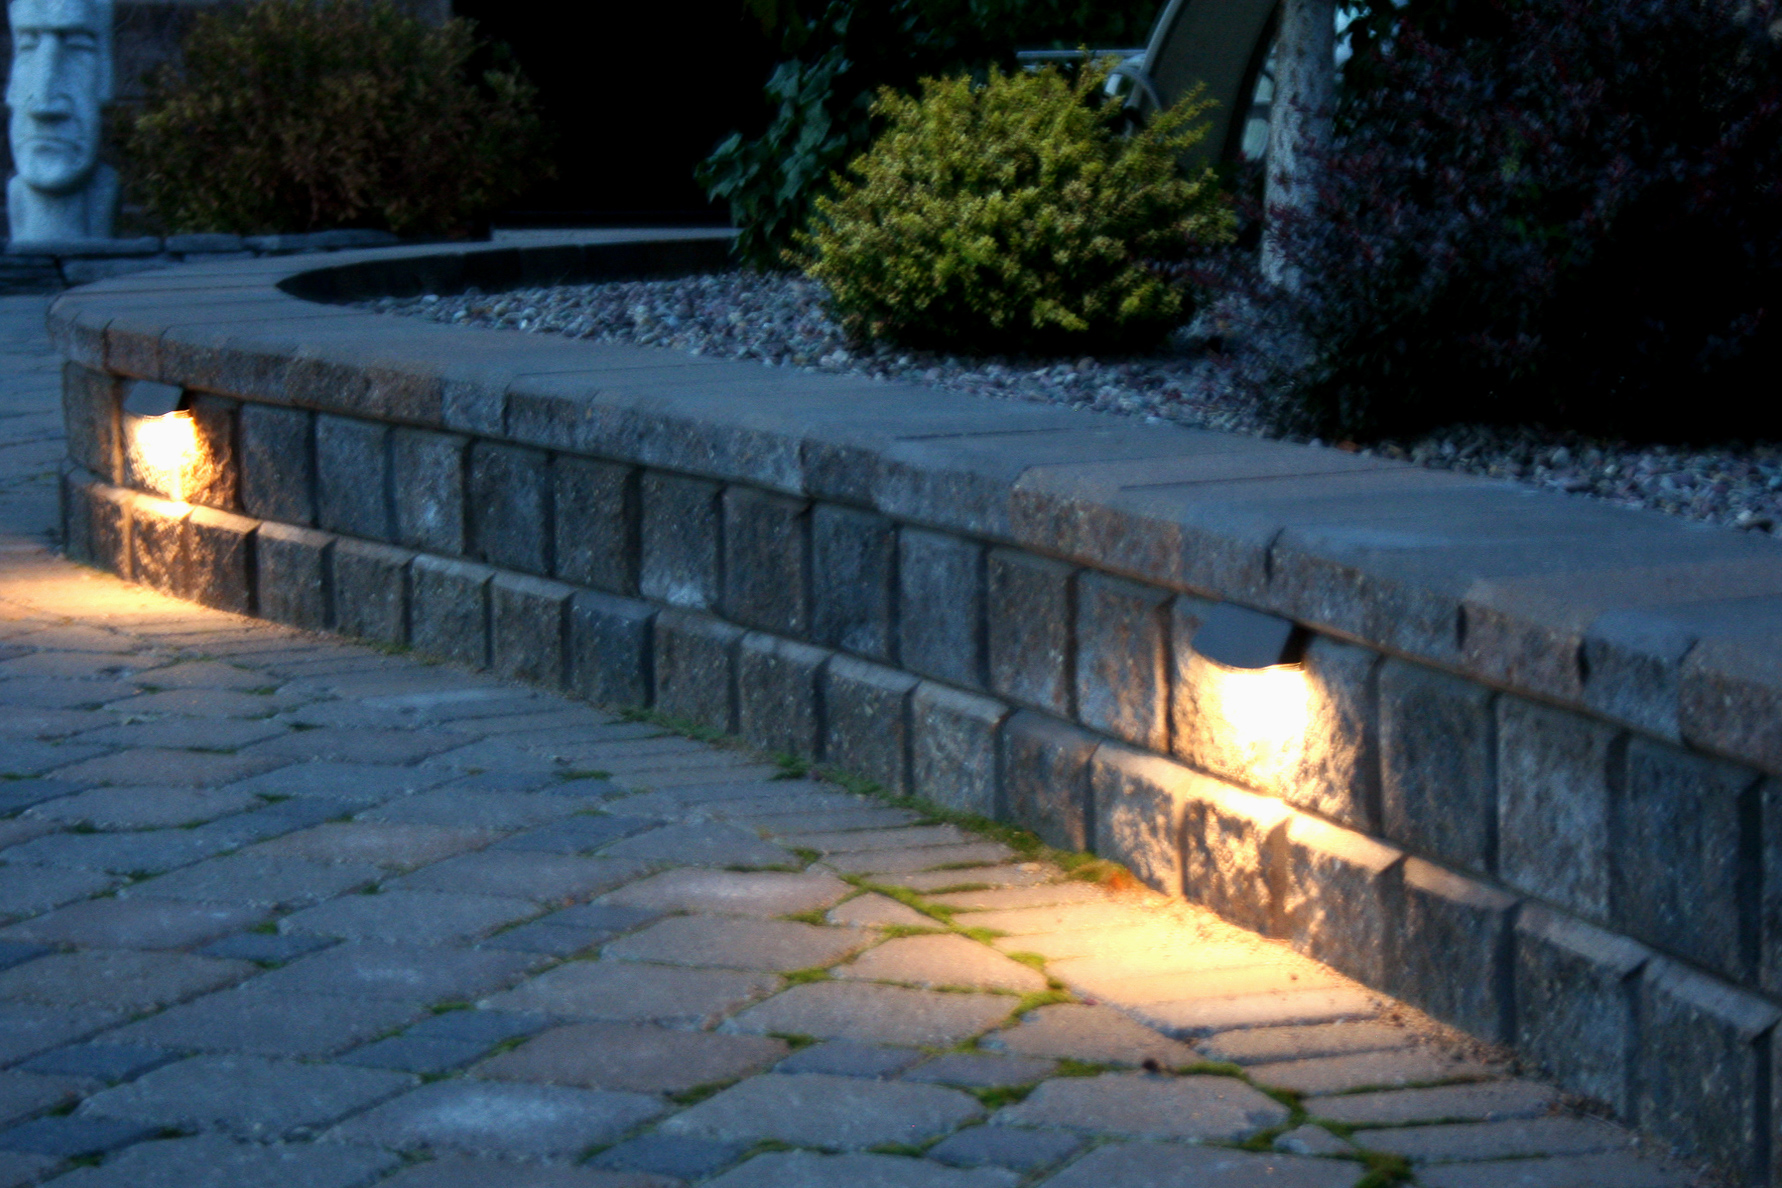 lighting-edge-wall-4.jpg